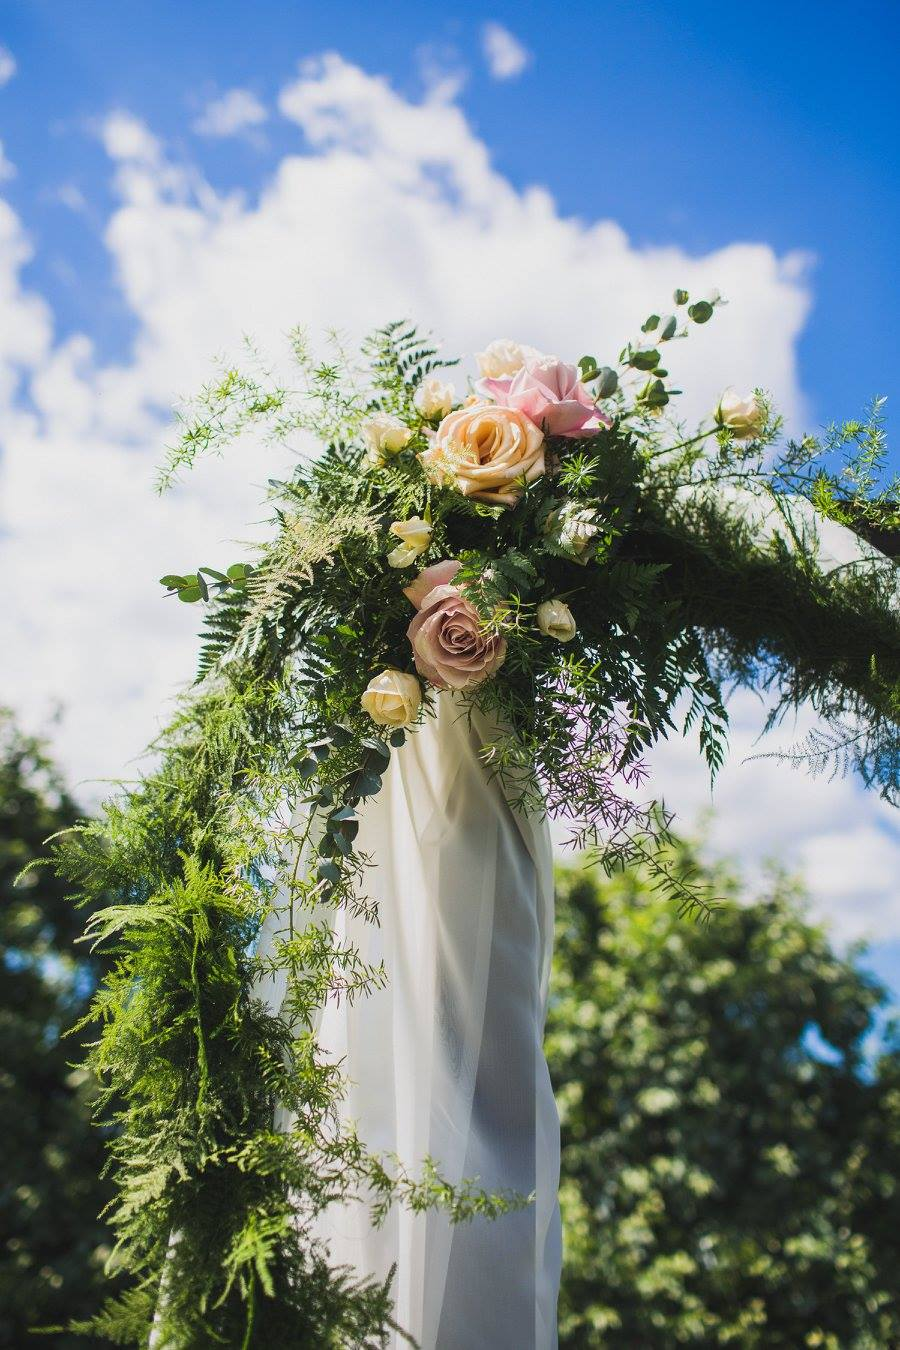 This garden ceremony was super chic with an arbor draped in white, greenery and plenty of pink roses. We have more garden wedding inspiration up on the blog right now!